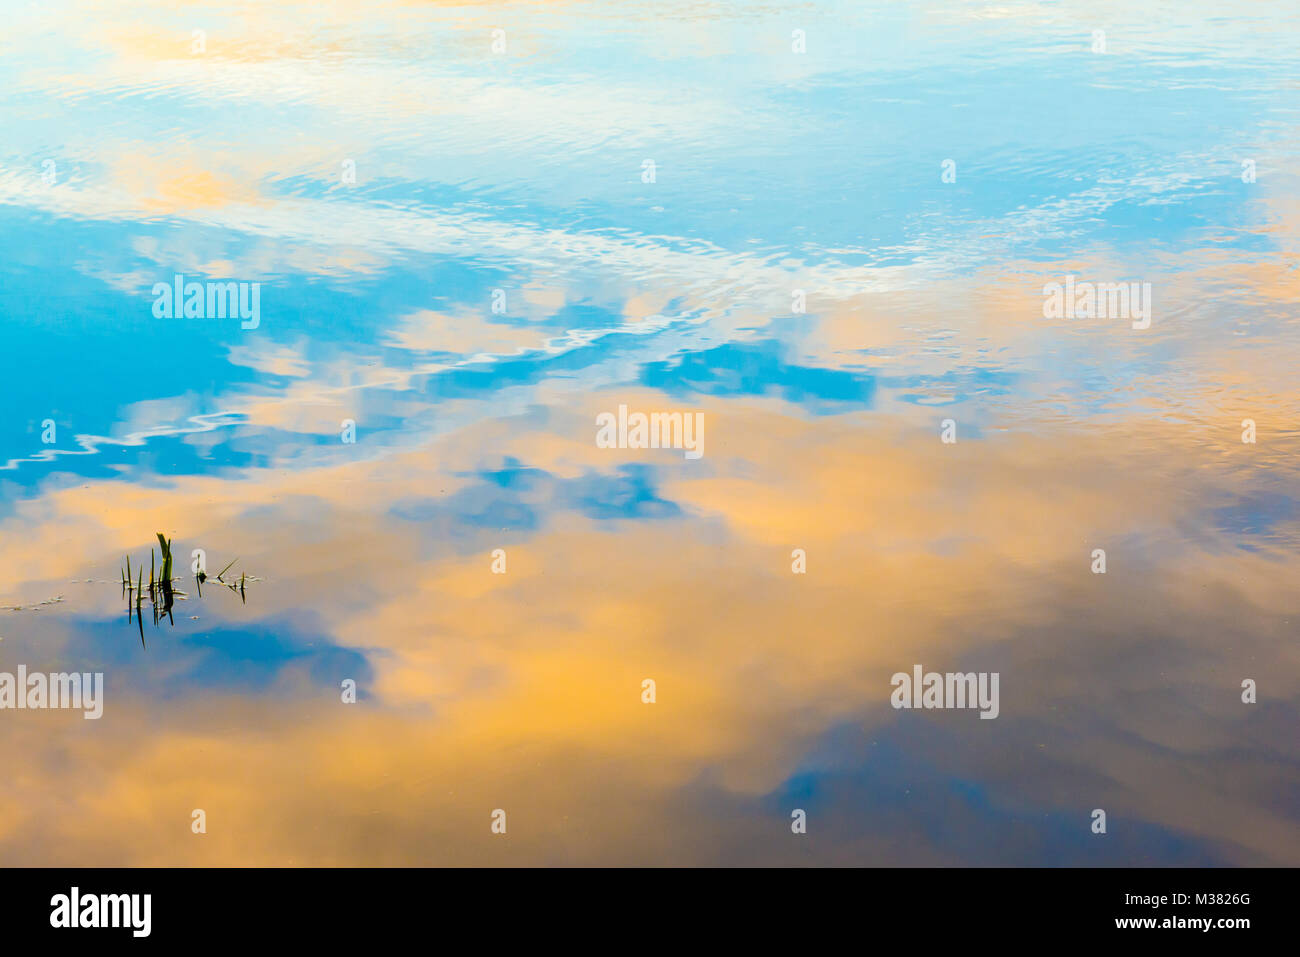 Shimmering reflection of a blue and yellow sky with clouds in water. - Stock Image